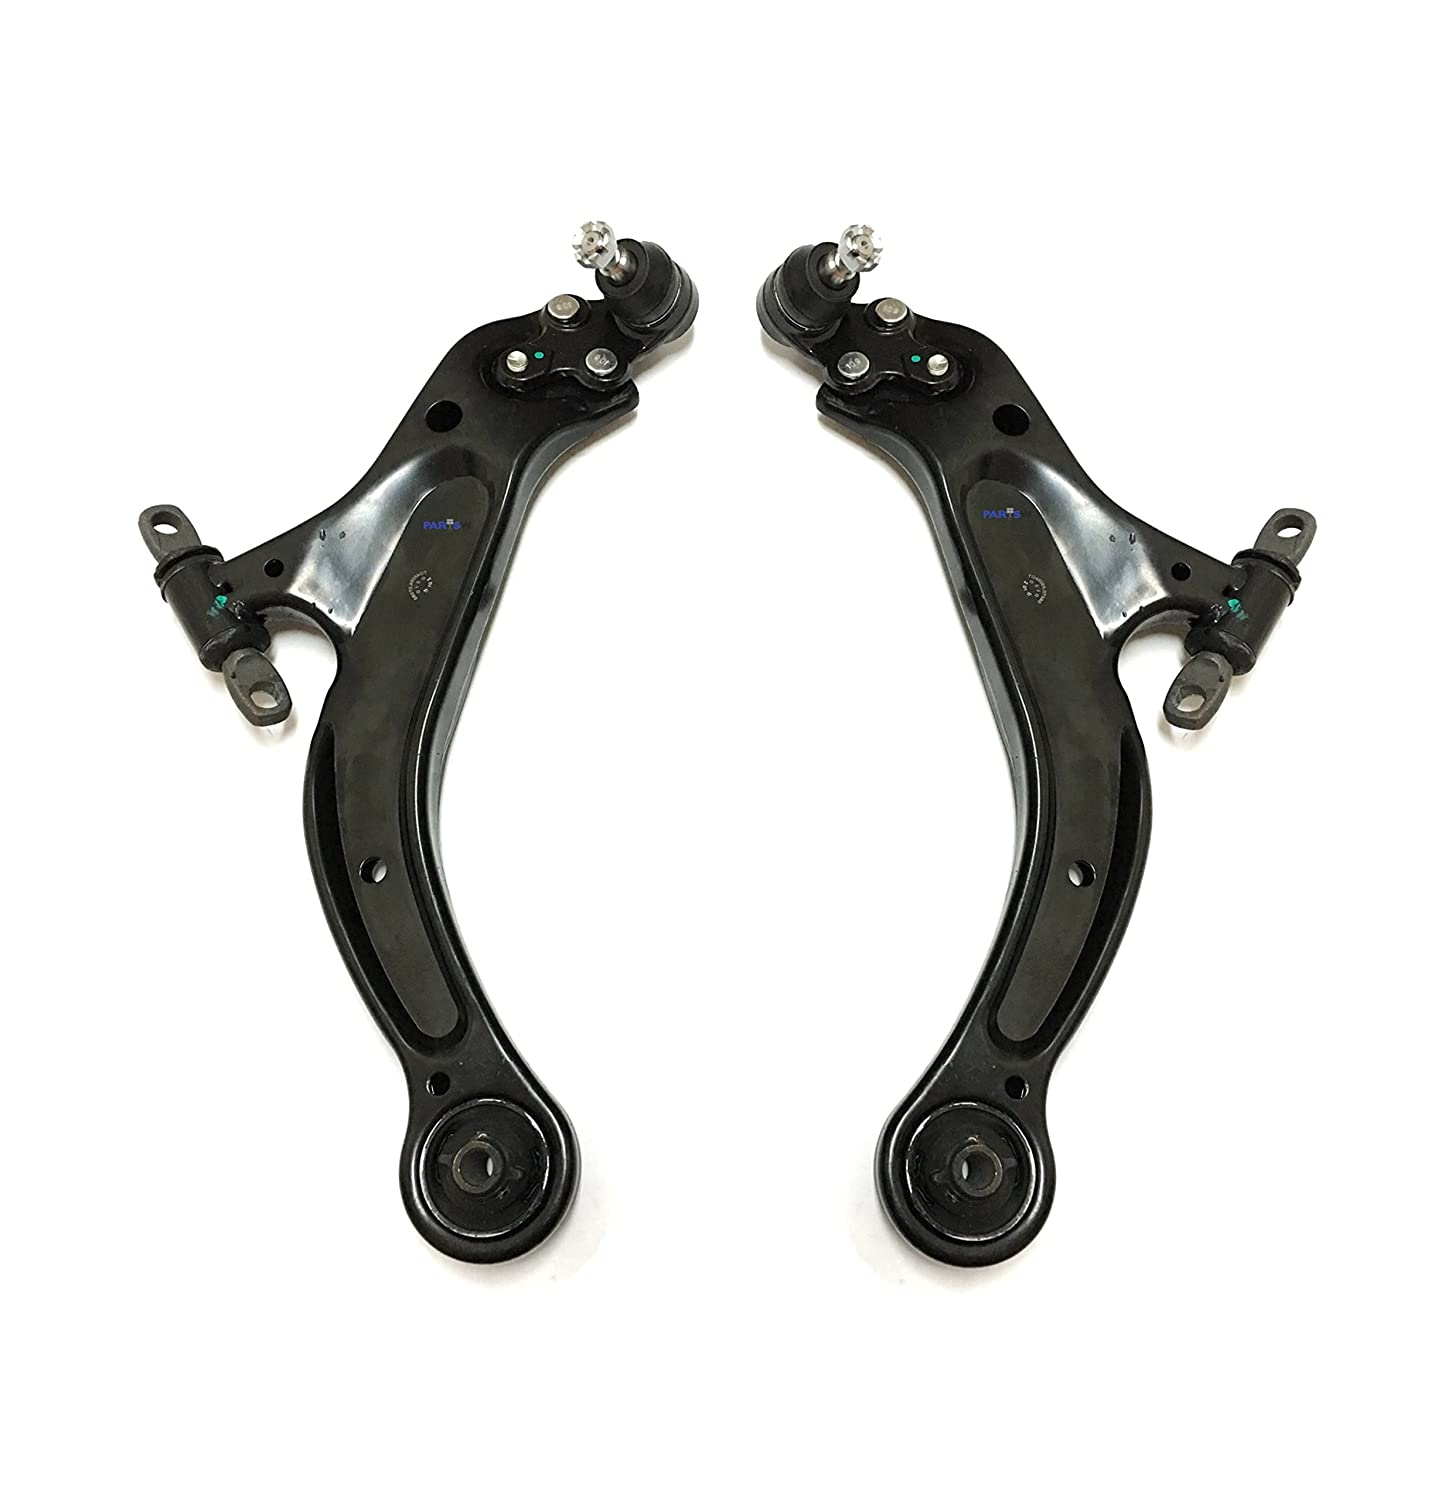 Genuiner Mazda 6 20032005 Control Arm